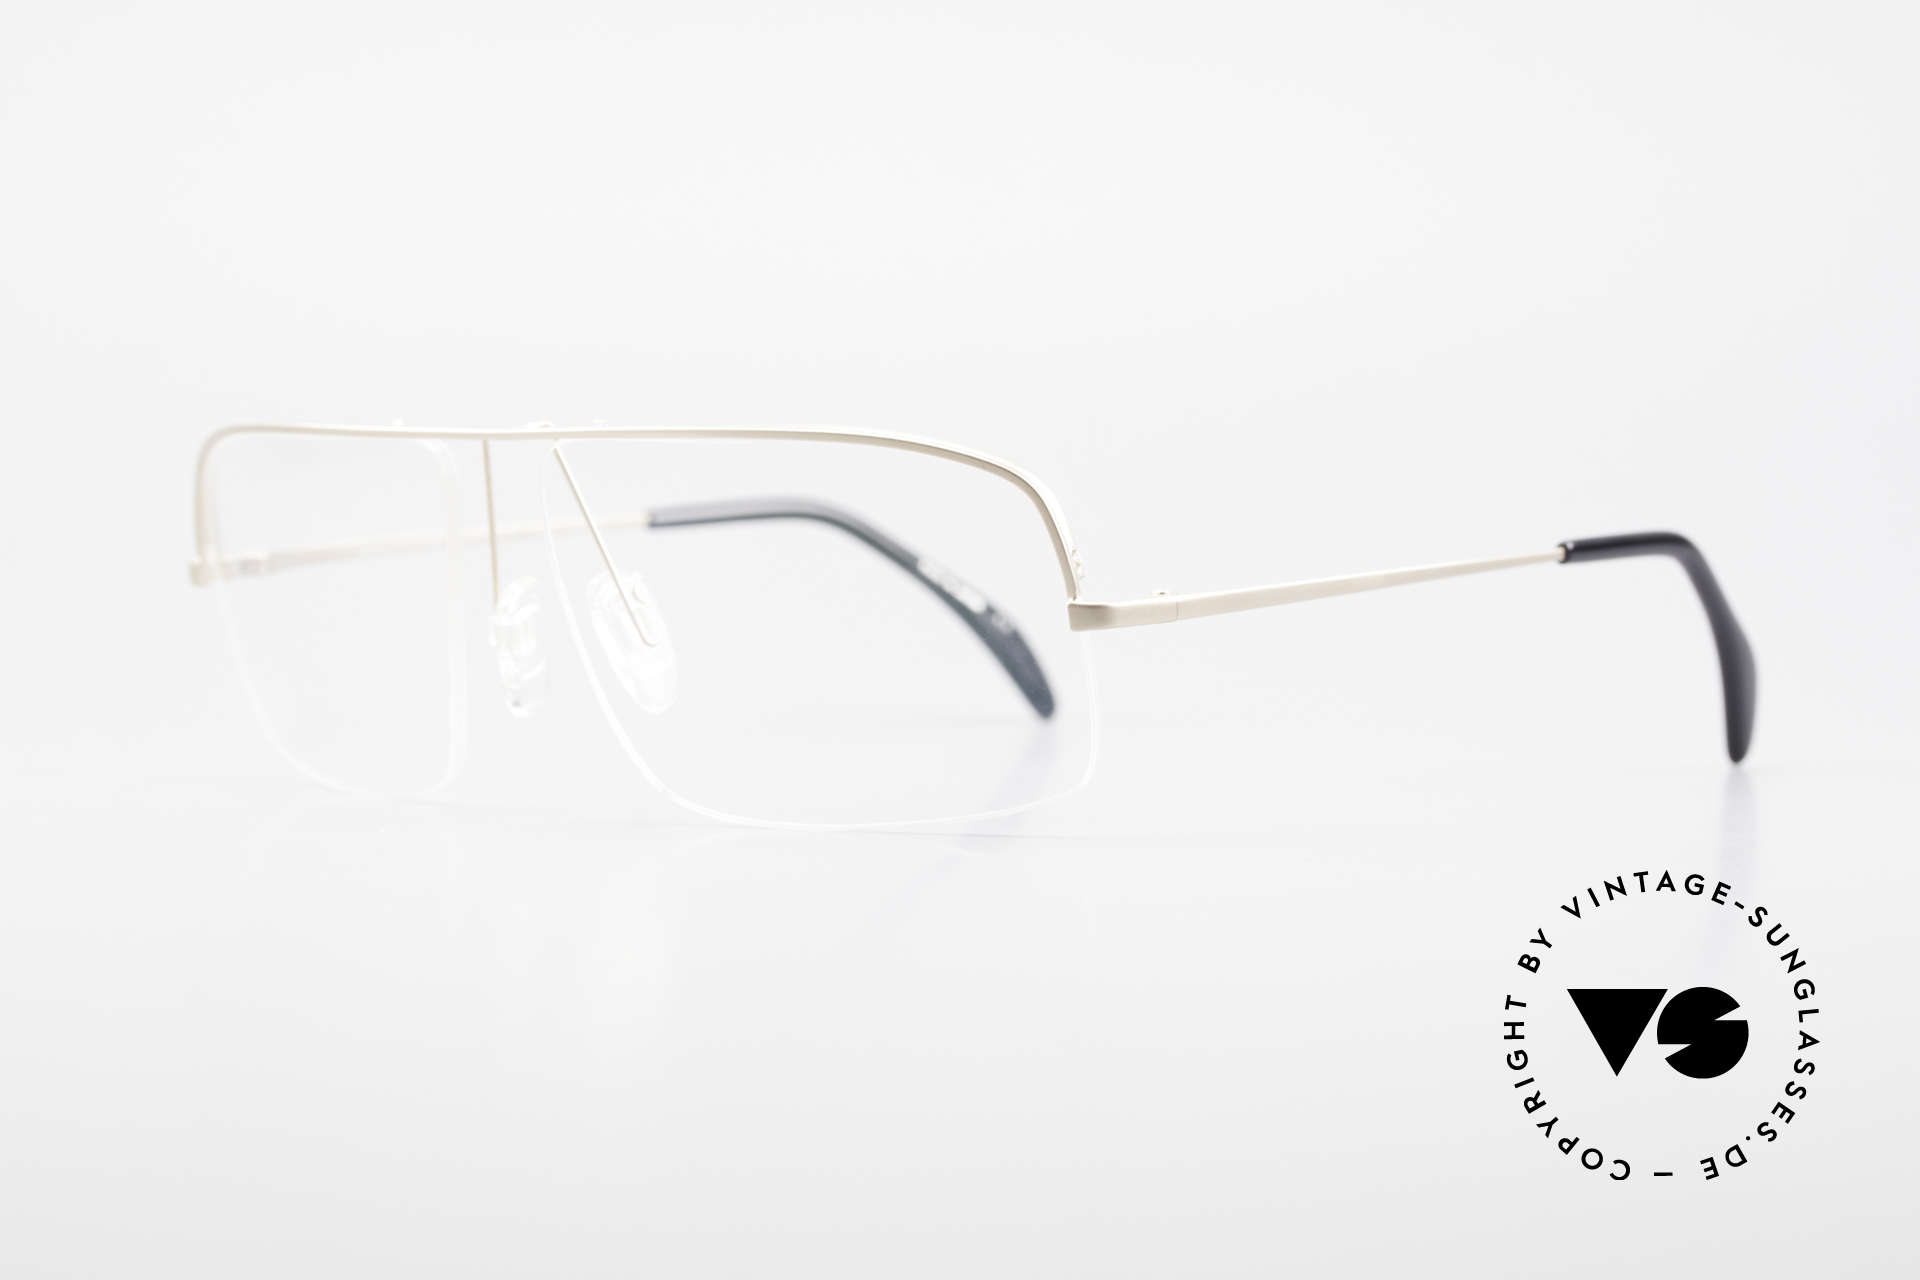 Wolfgang Proksch WP0103 New Tear Drop Titanium Frame, plain frame lines and Japanese striving for quality, Made for Men